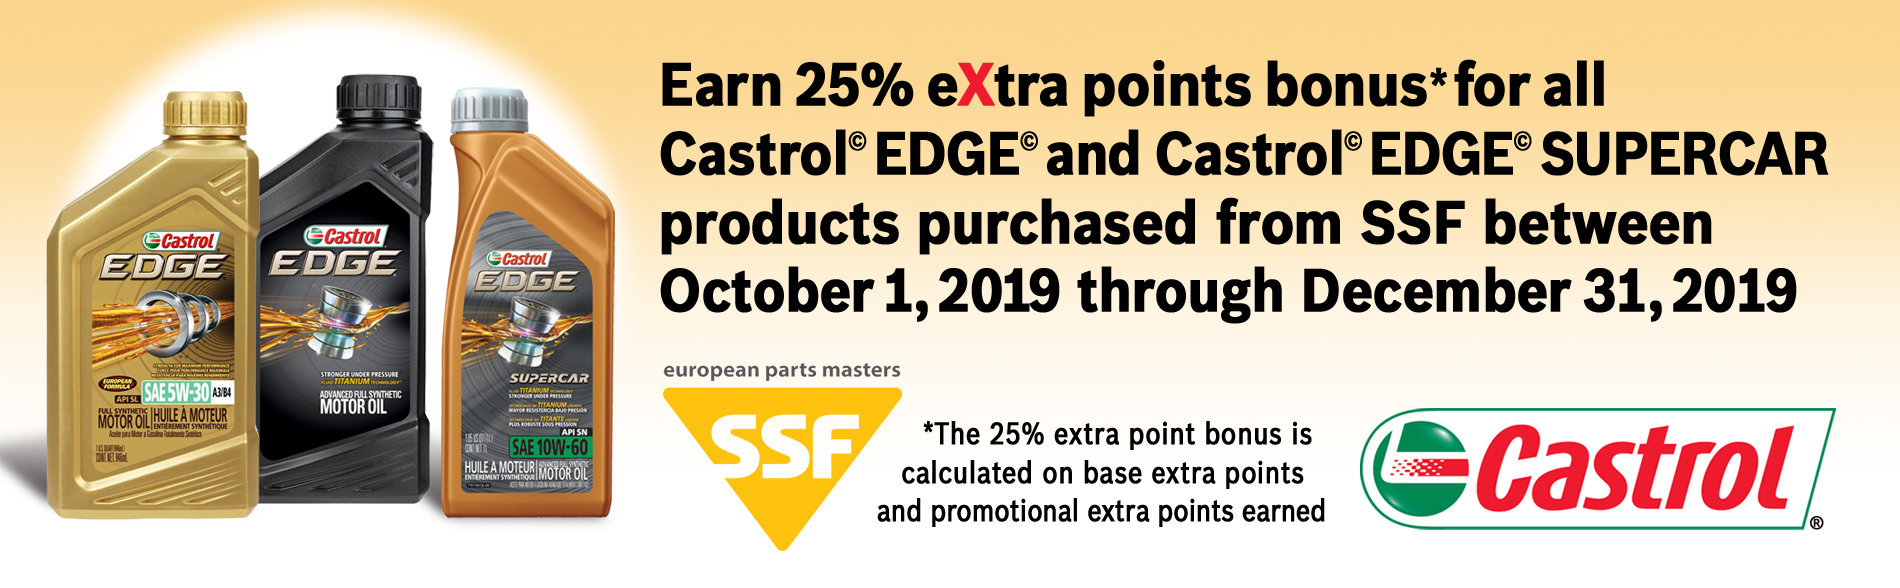 25% extra point bonus on Eligible Castrol Edge and Edge SUPERCAR products from SSF.